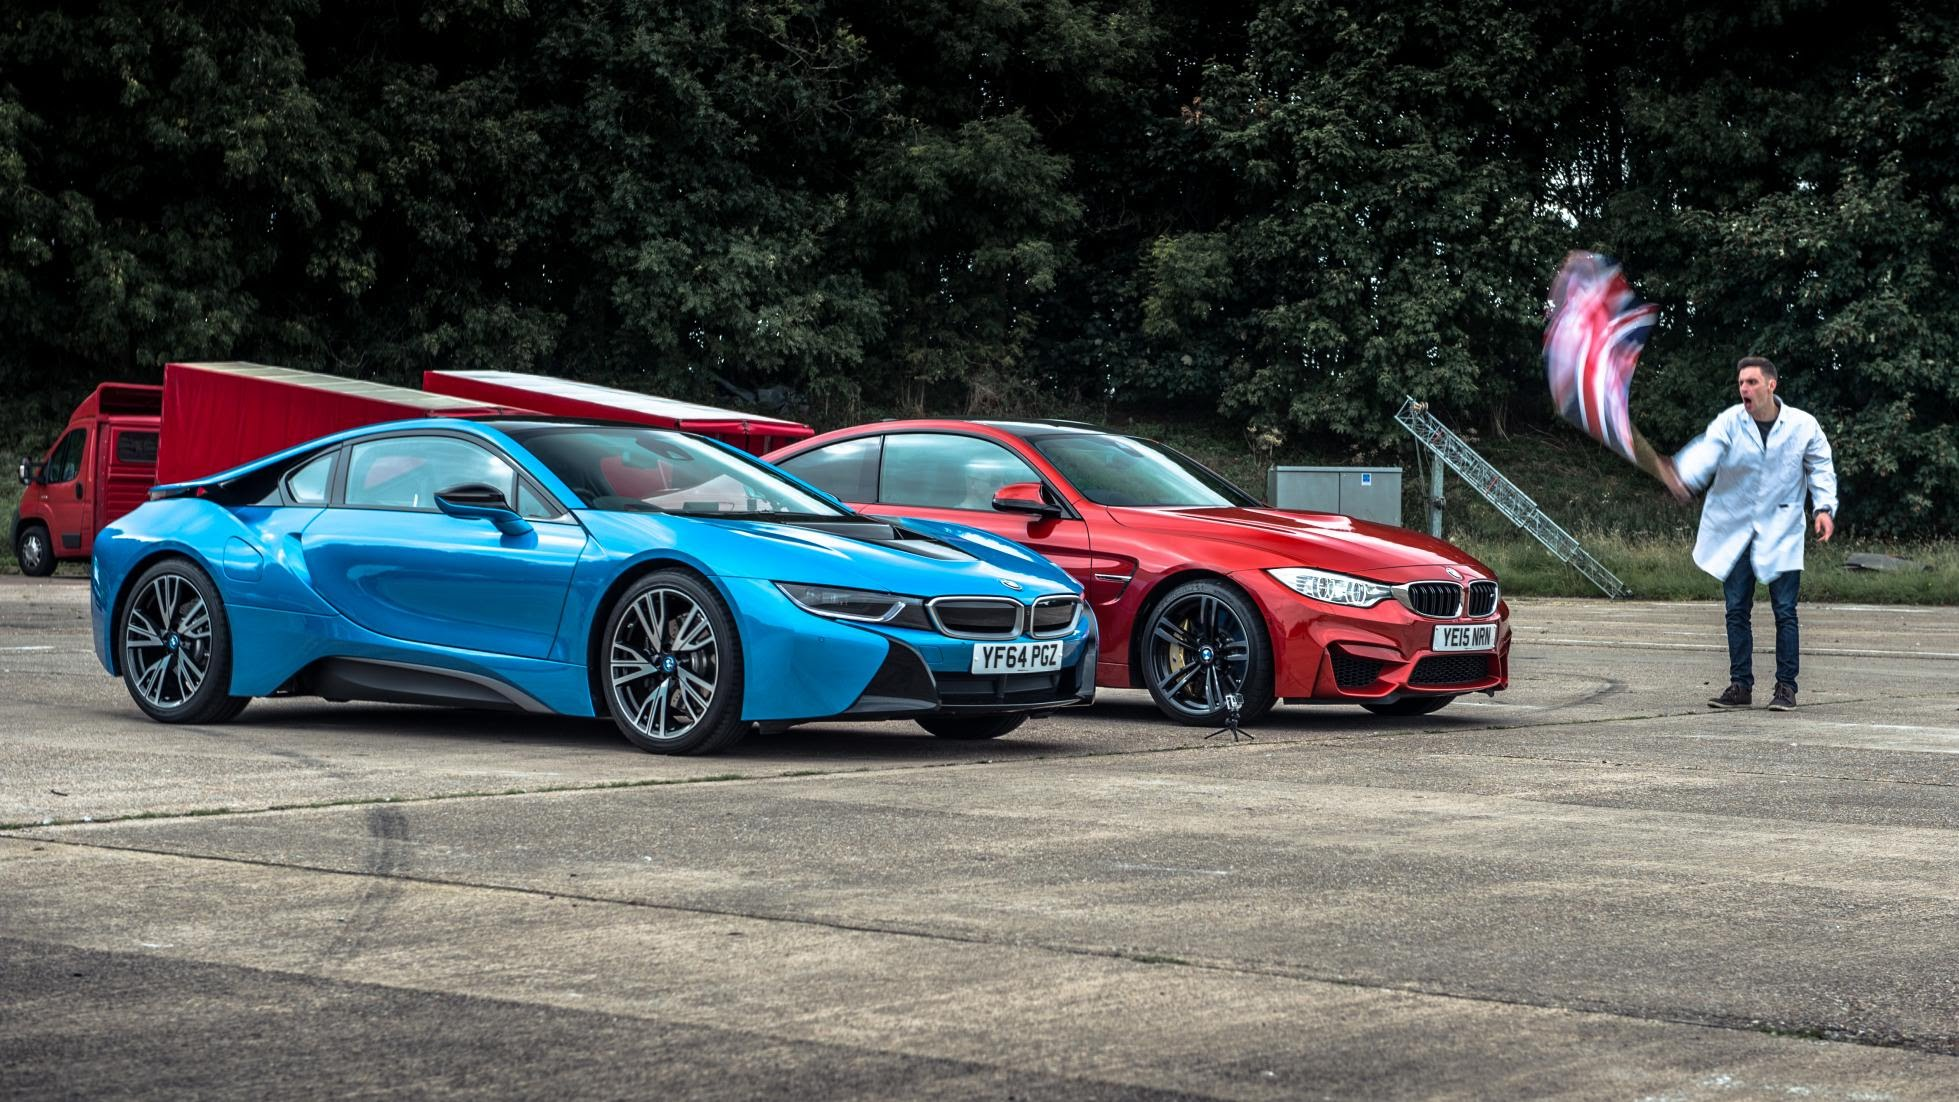 Bmw I8 Vs M4 Drag Race By Top Gear Is A Photo Finish Autoevolution